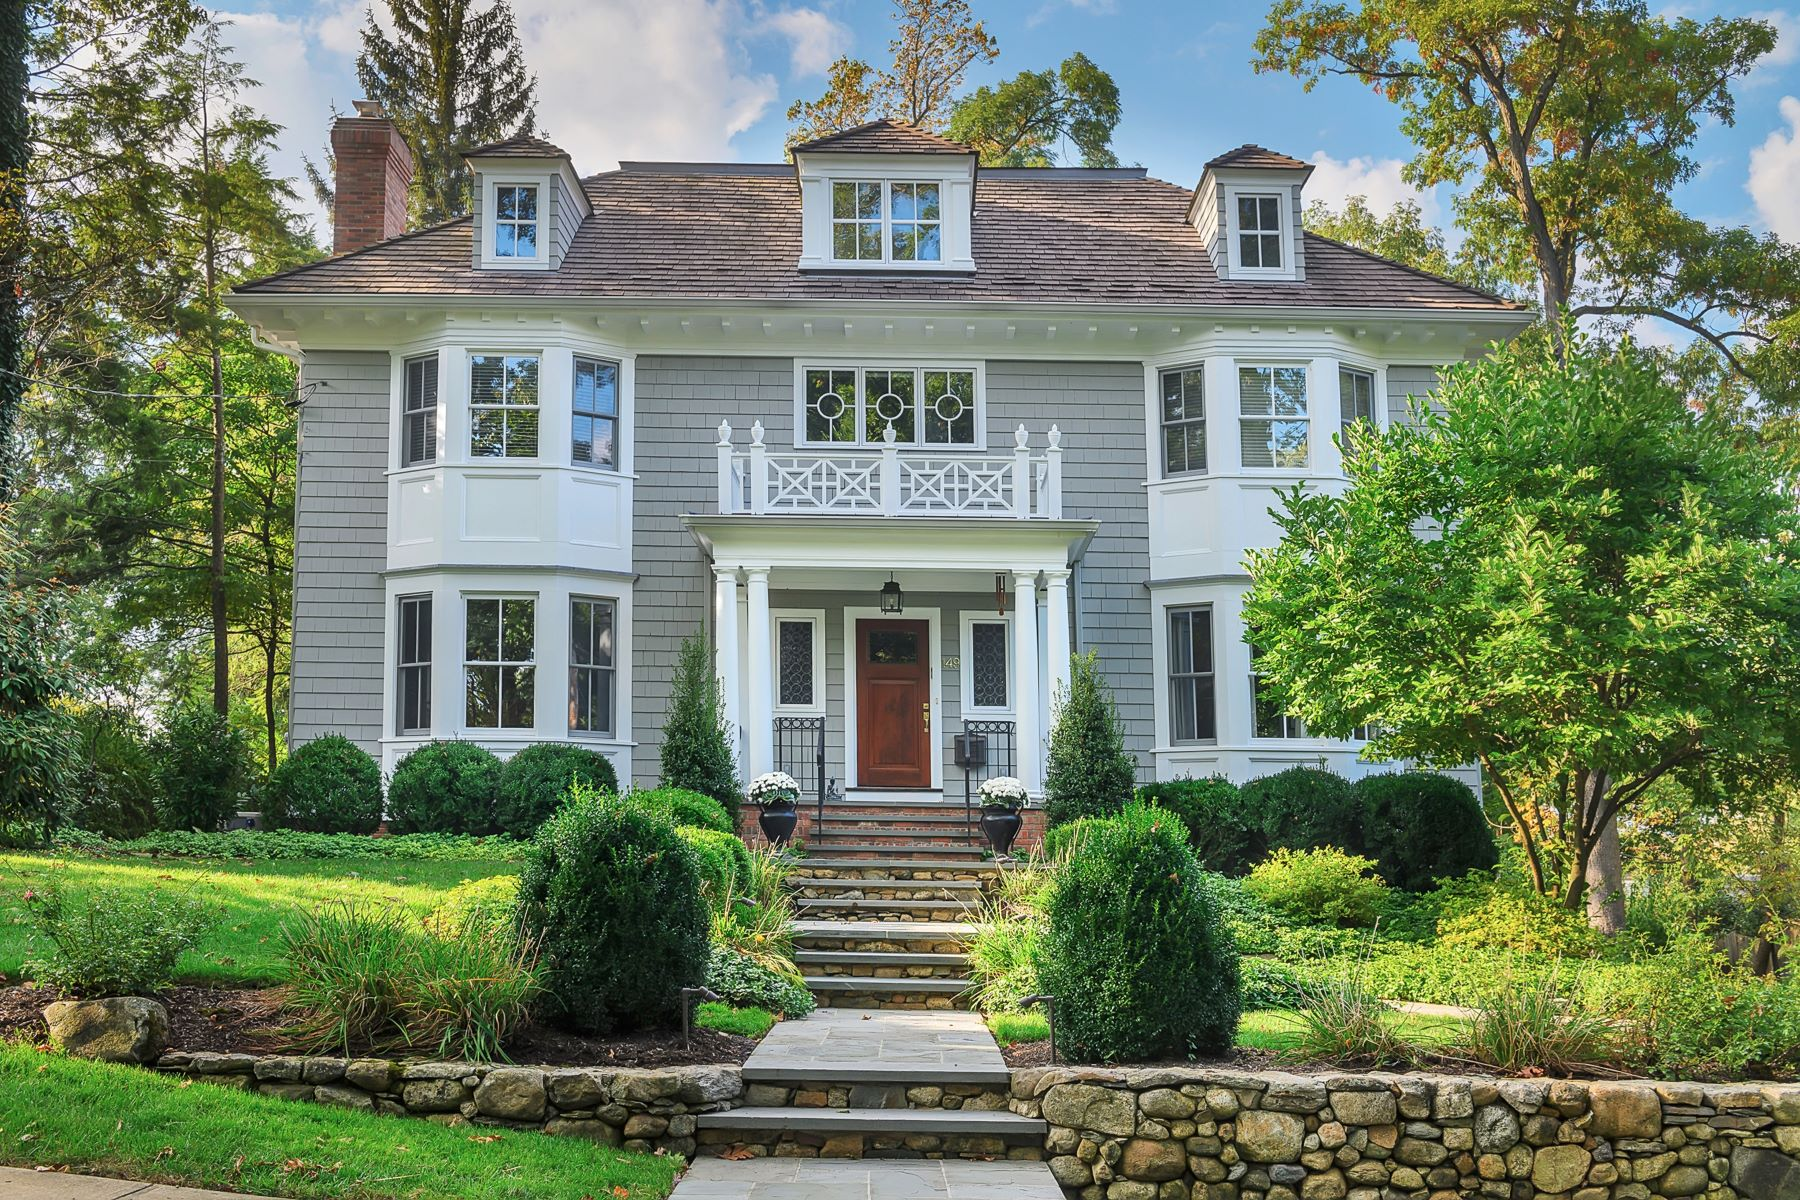 Single Family Homes for Sale at Custom Colonial Revival 149 Oak Ridge Avenue Summit, New Jersey 07901 United States